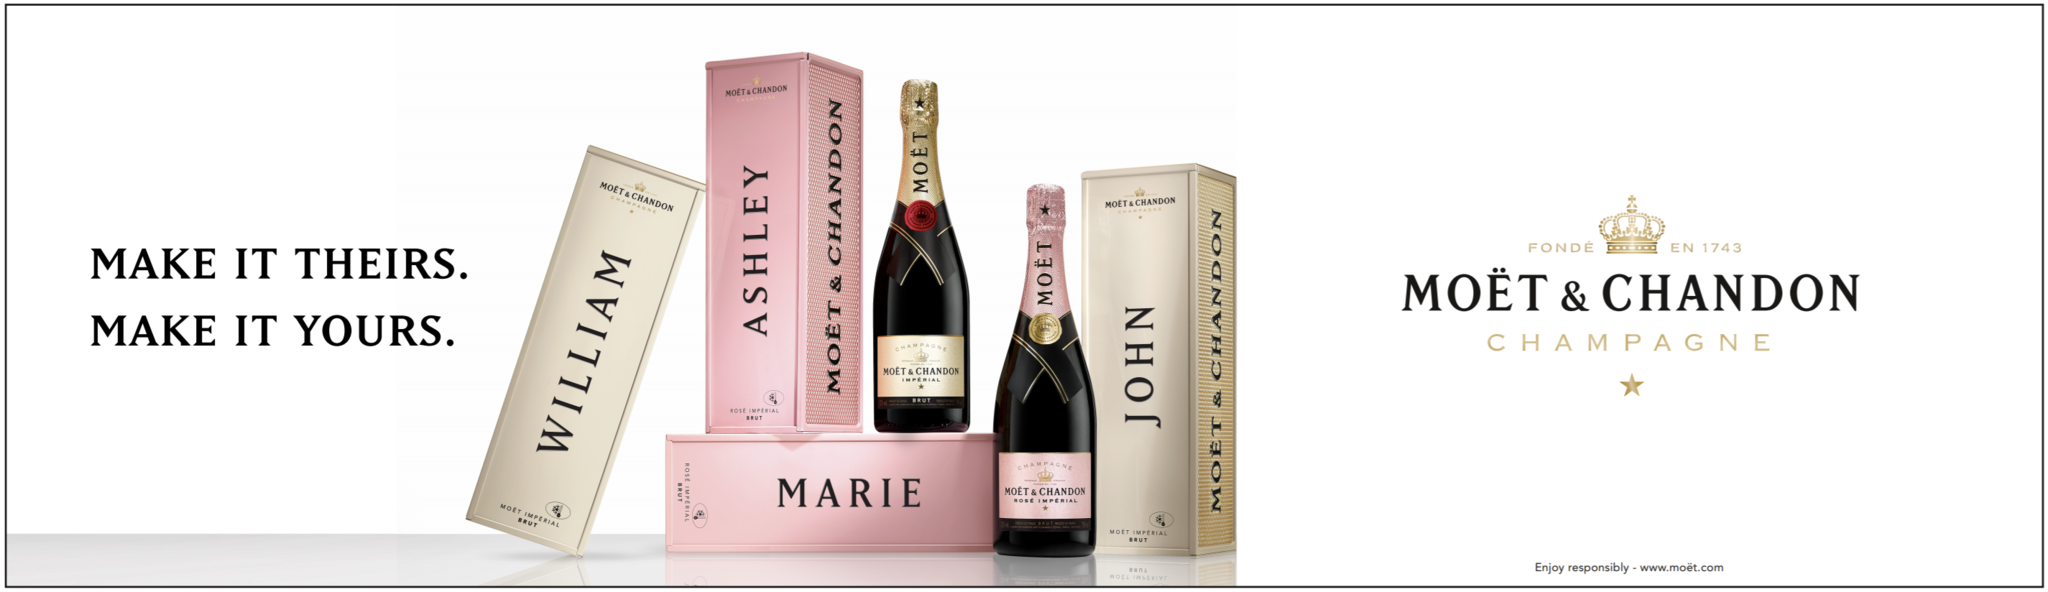 Moet & Chandon specially yours